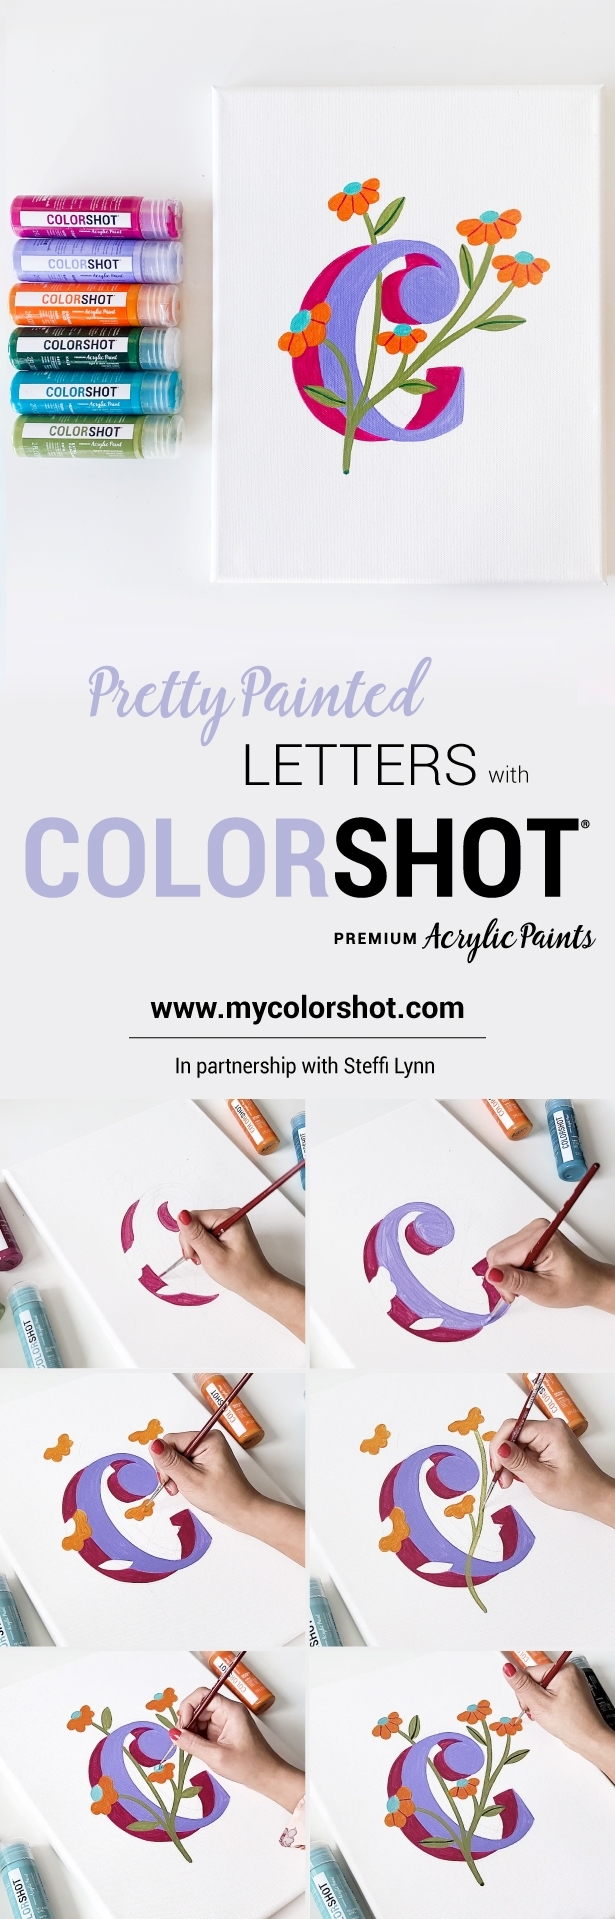 Make Pretty Painted Letters with COLORSHOT Acrylic Paints